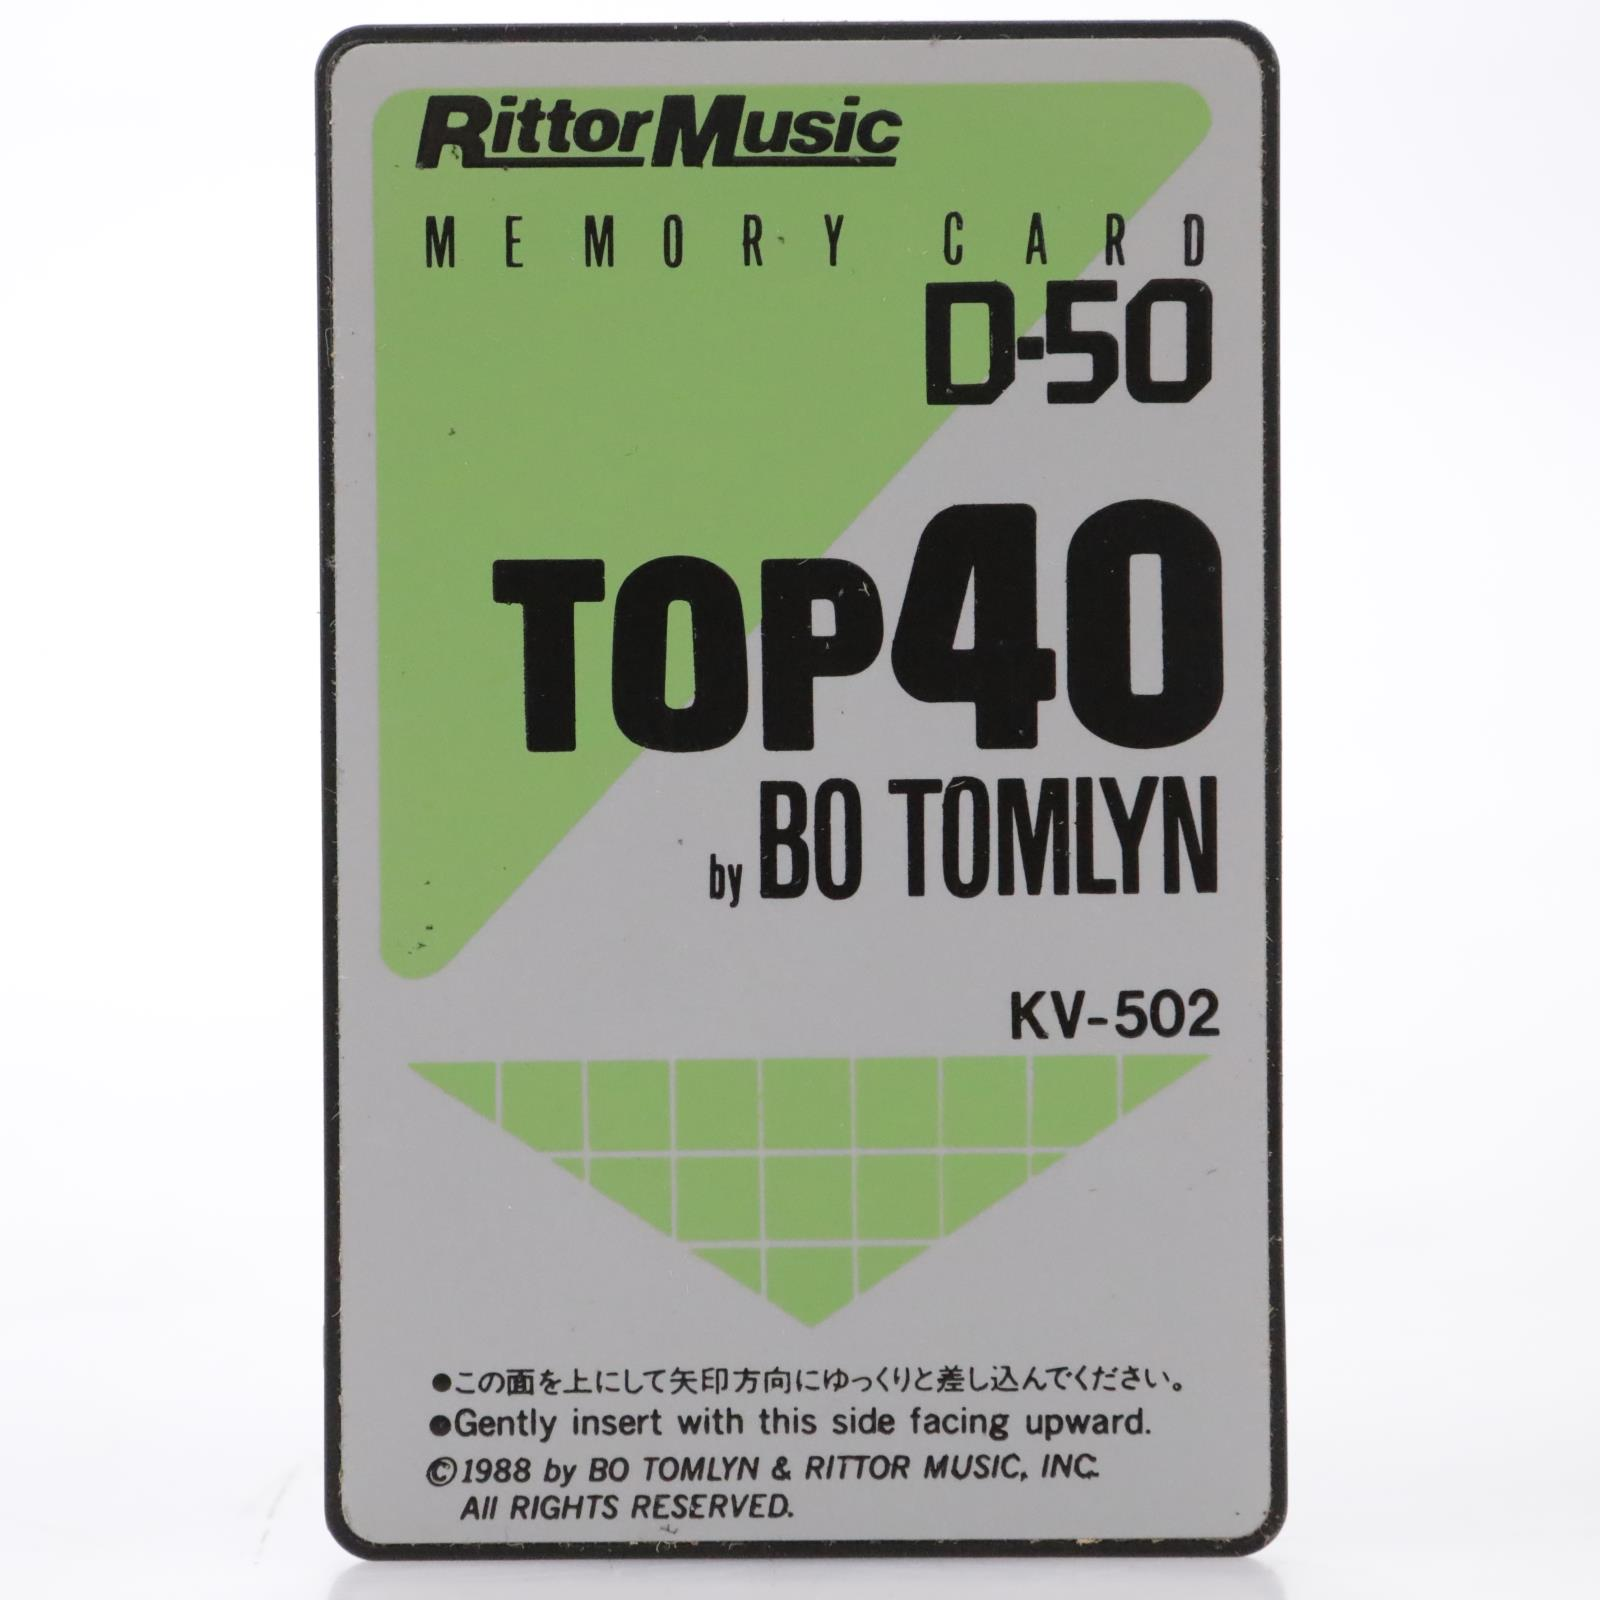 Rittor Music KV-502 Top-40 by Bo Tomlyn Roland D-50 Memory Sound Card #44125